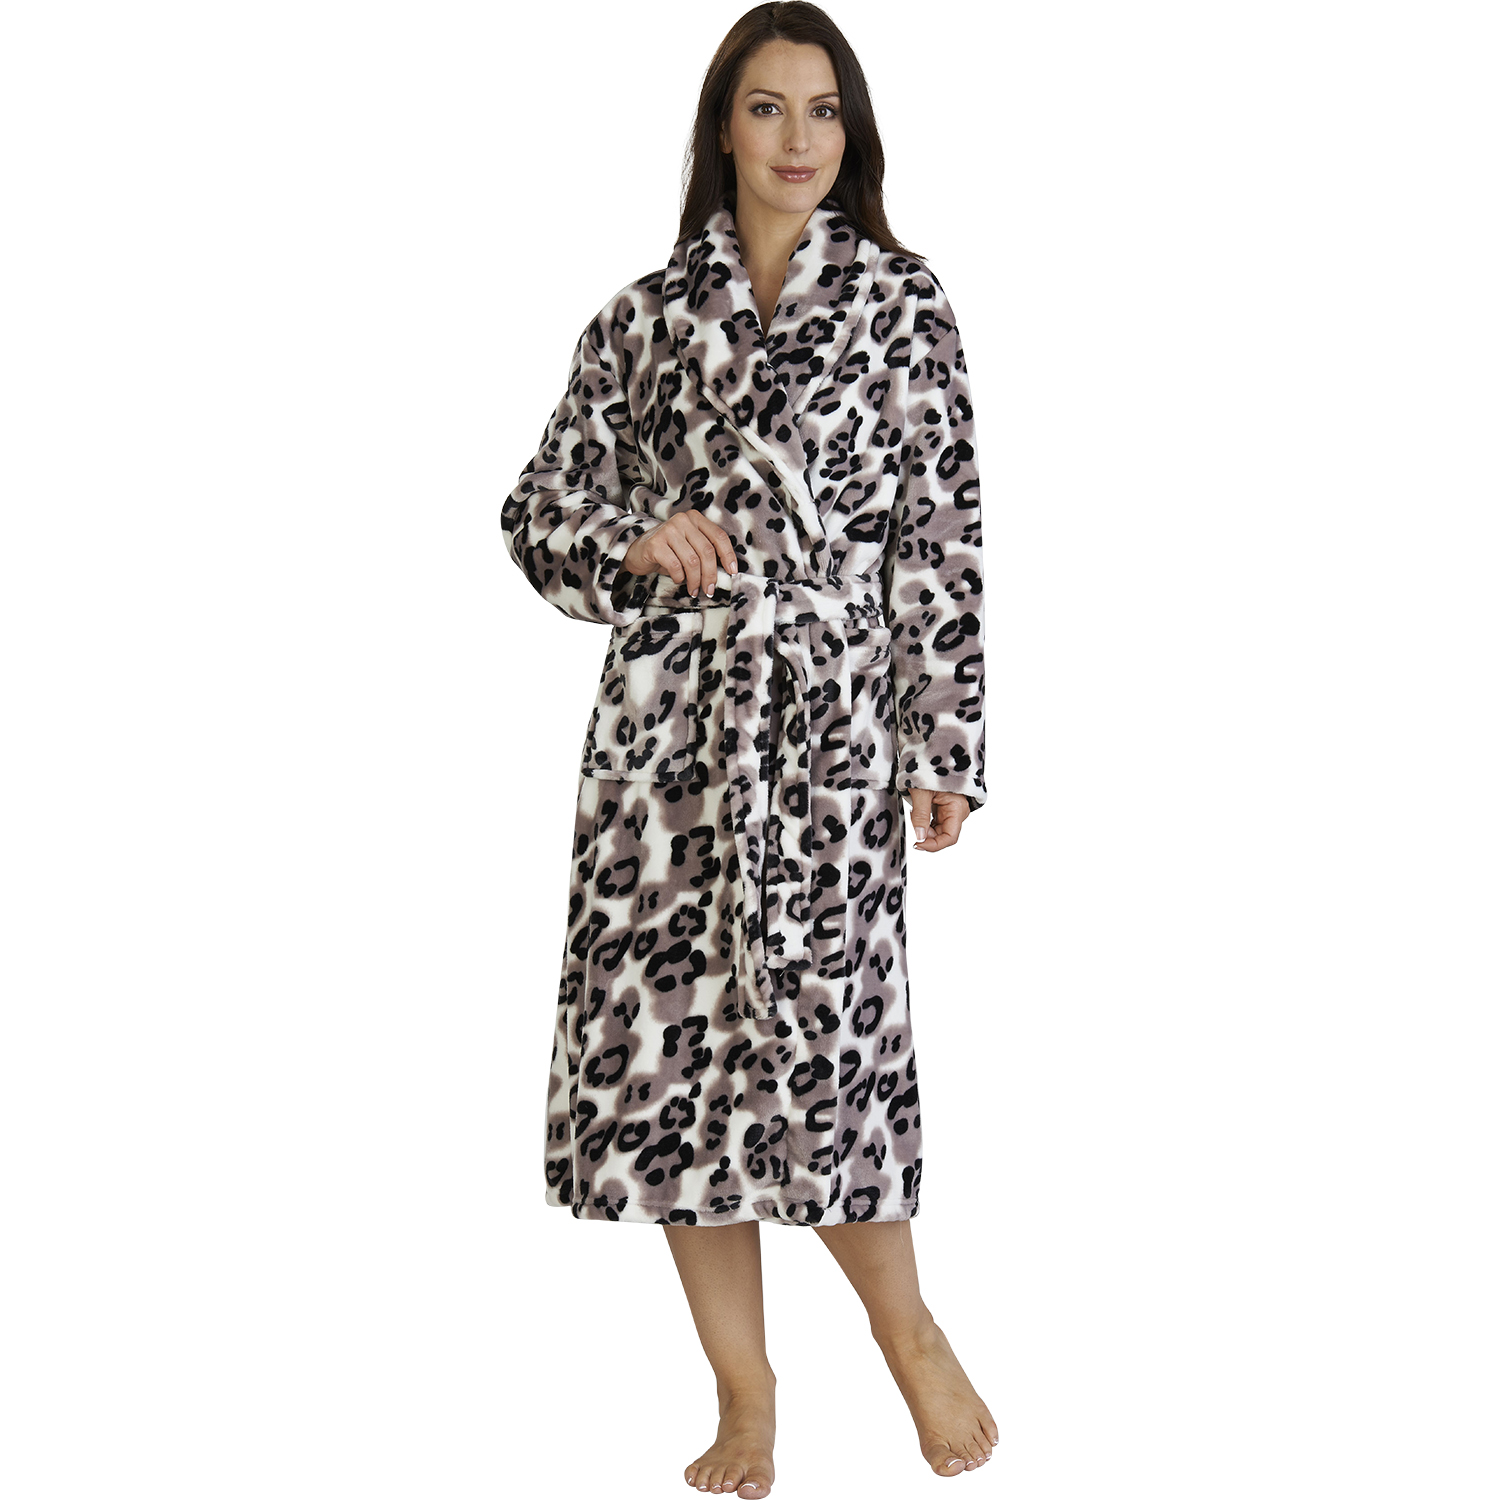 Shop Target for Robes you will love at great low prices. Spend $35+ or use your REDcard & get free 2-day shipping on most items or same-day pick-up in store.